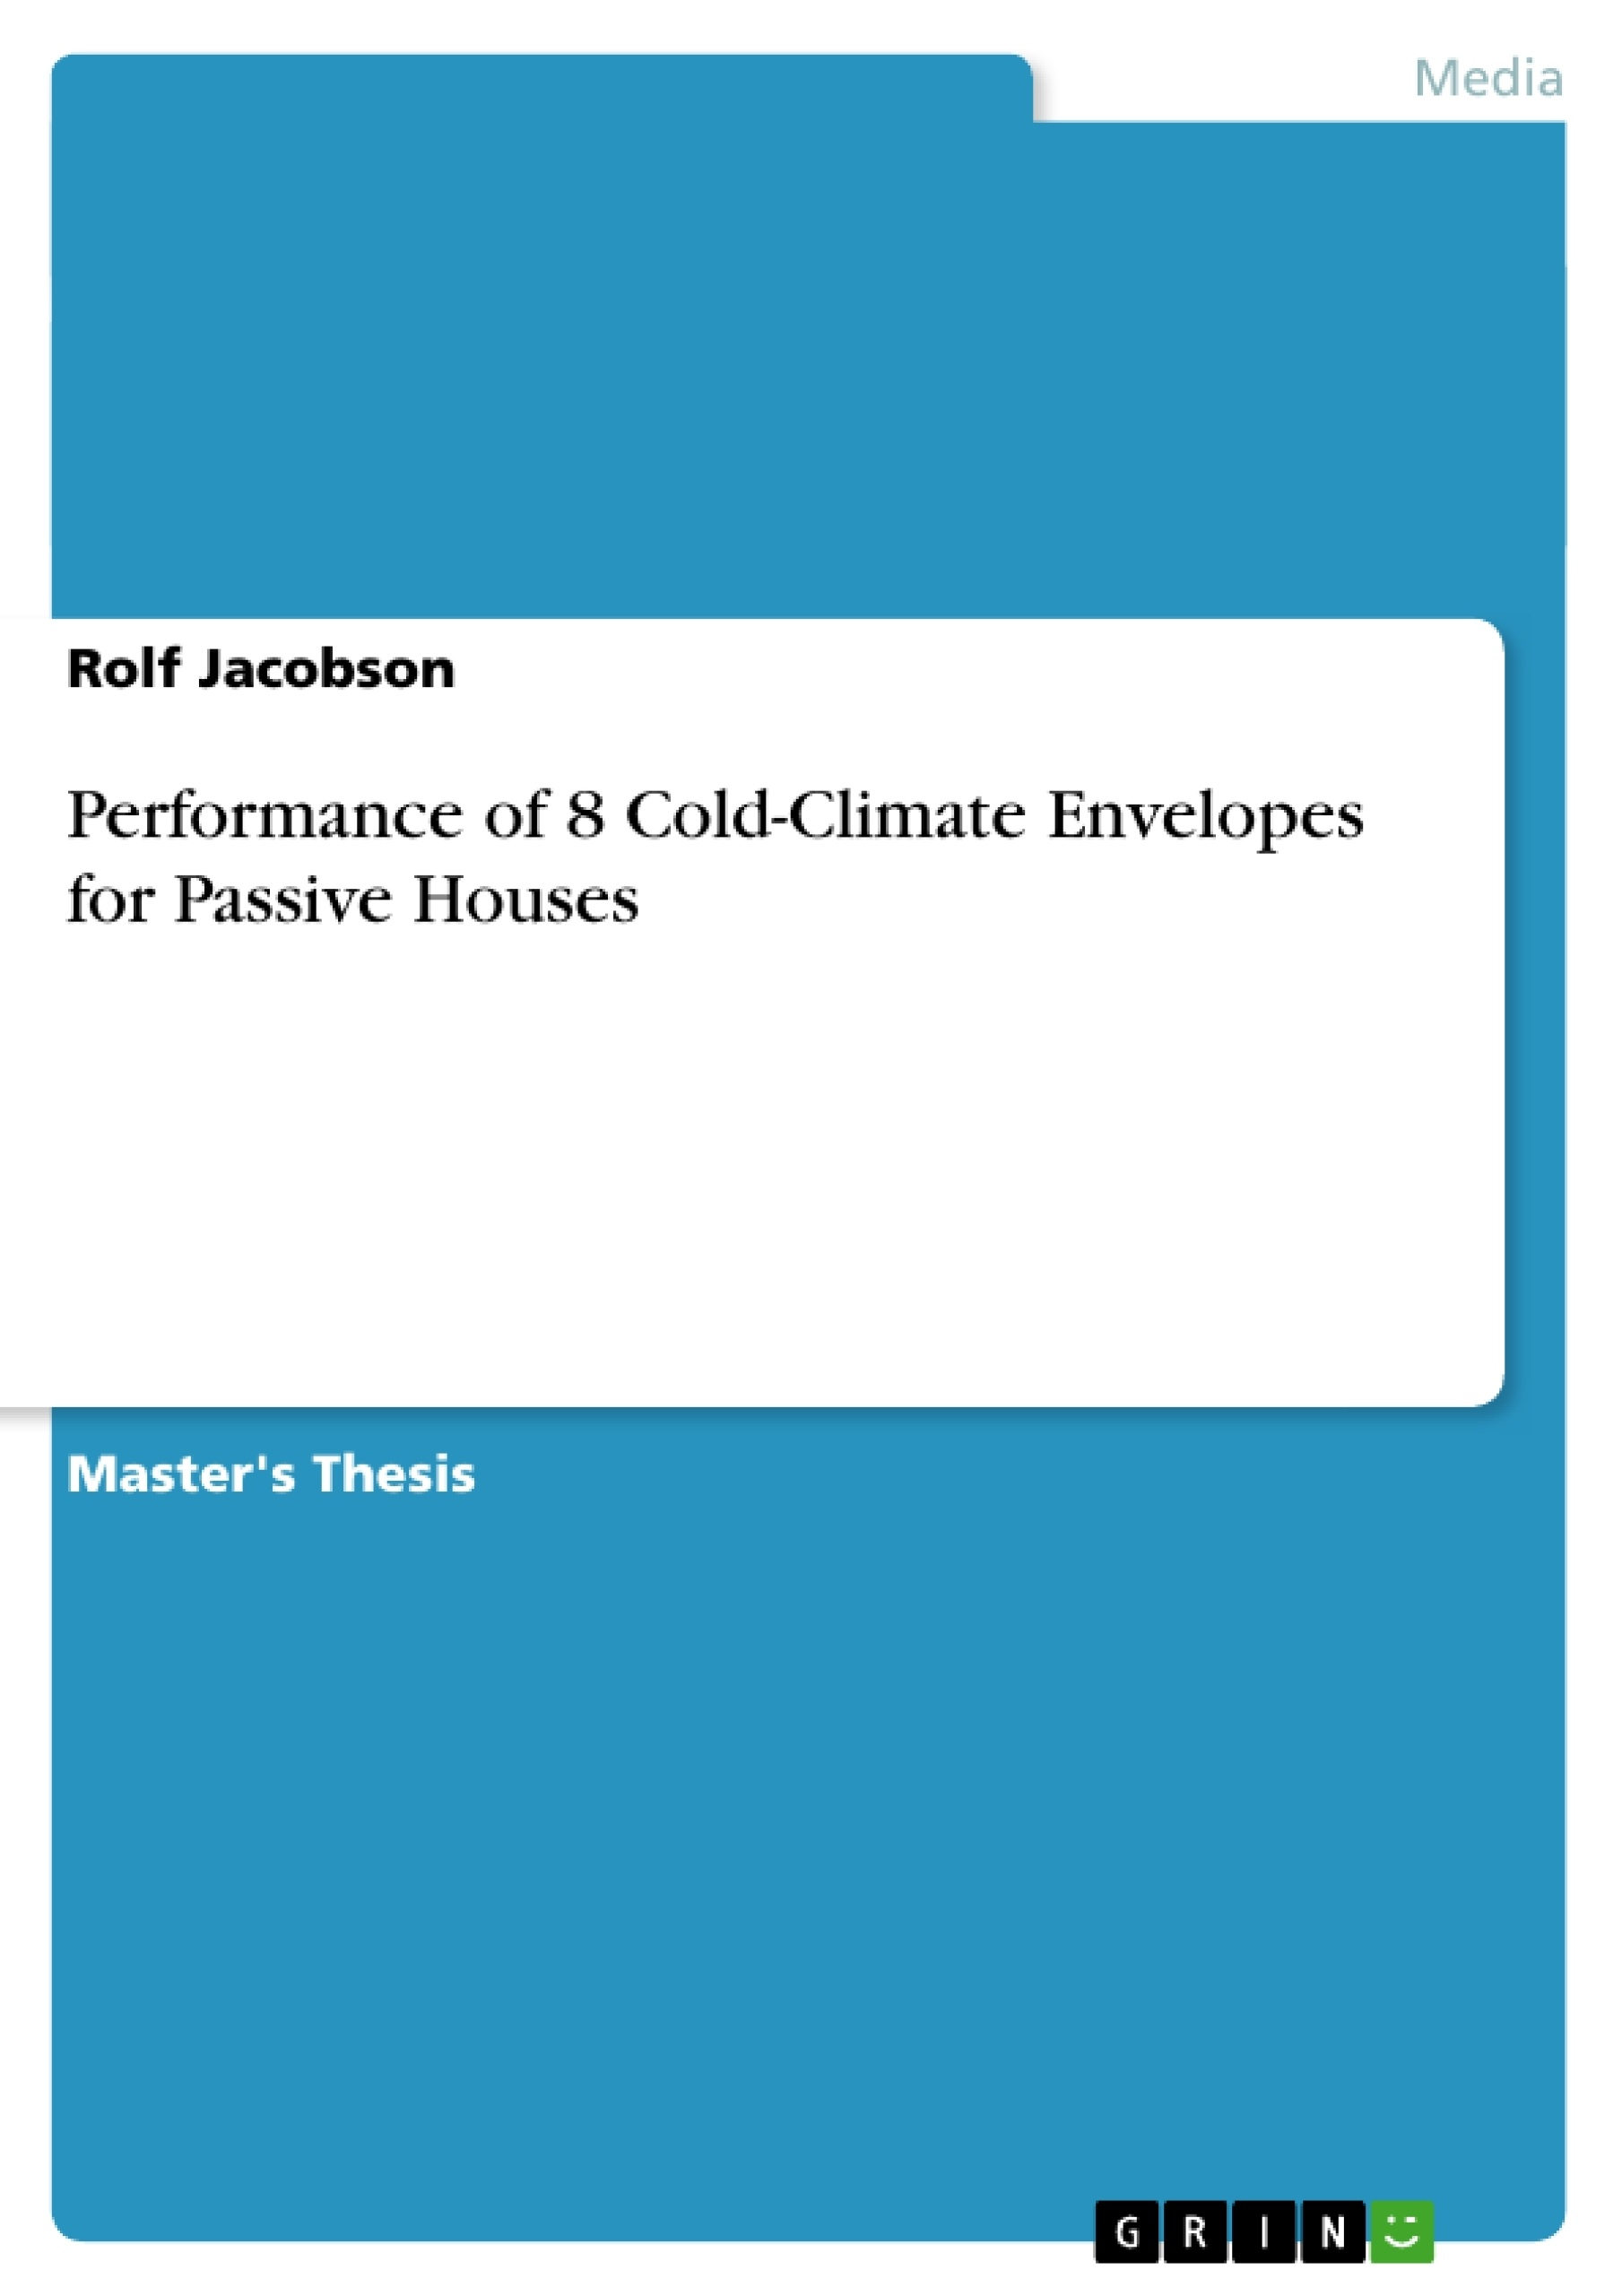 Title: Performance of 8 Cold-Climate Envelopes for Passive Houses